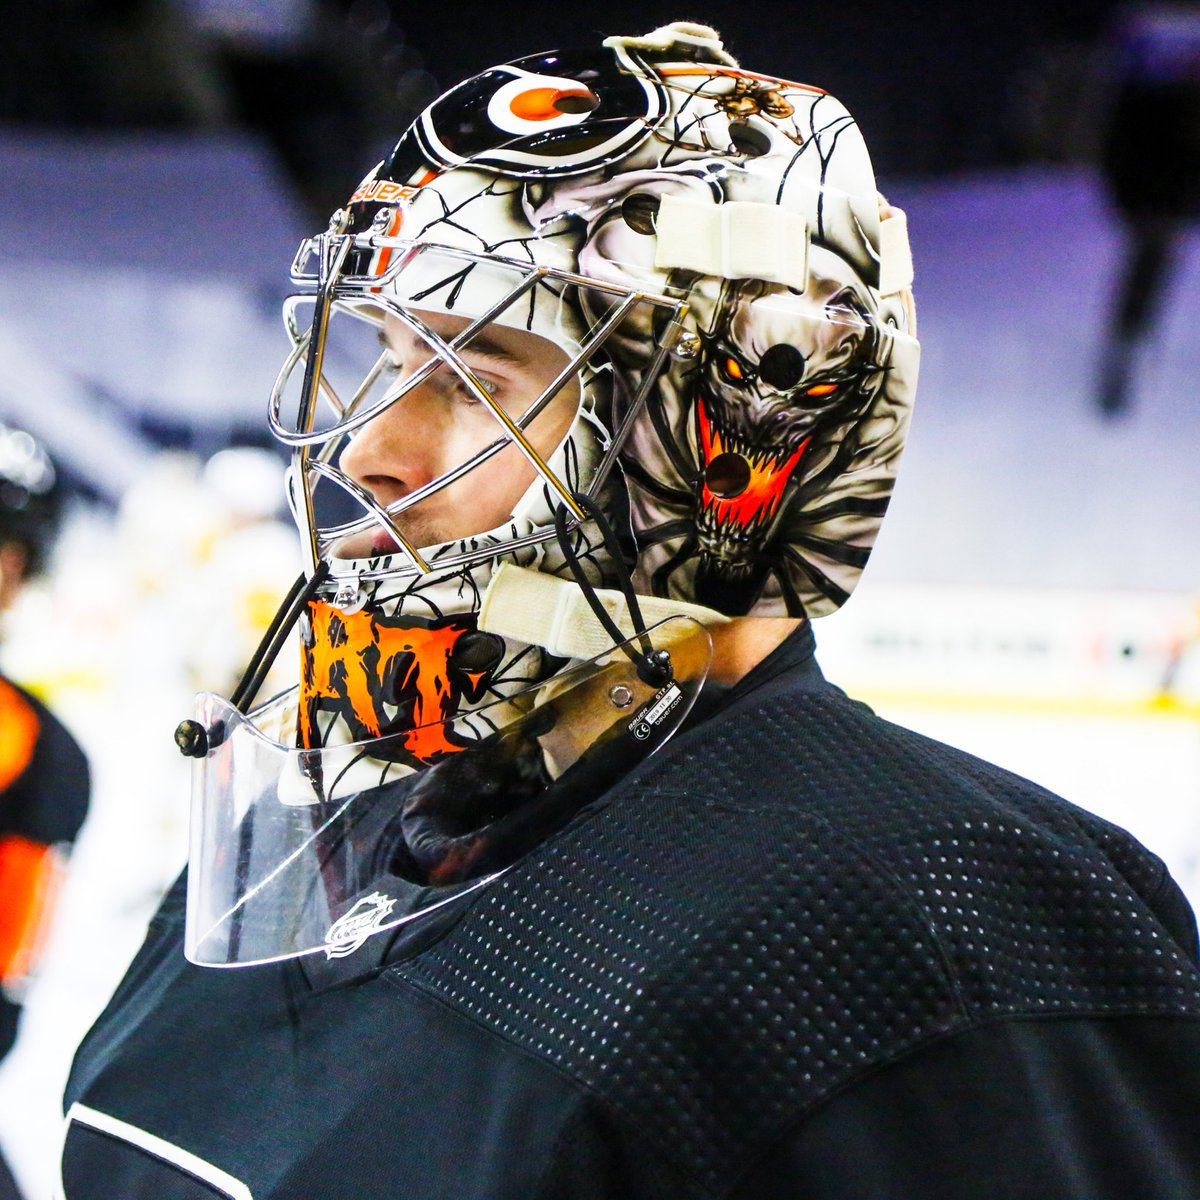 Replying to @NHLFlyers: A new Carter Hart Mask to marvel at. 🕷🕸   #AnytimeAnywhere   #PITvsPHI